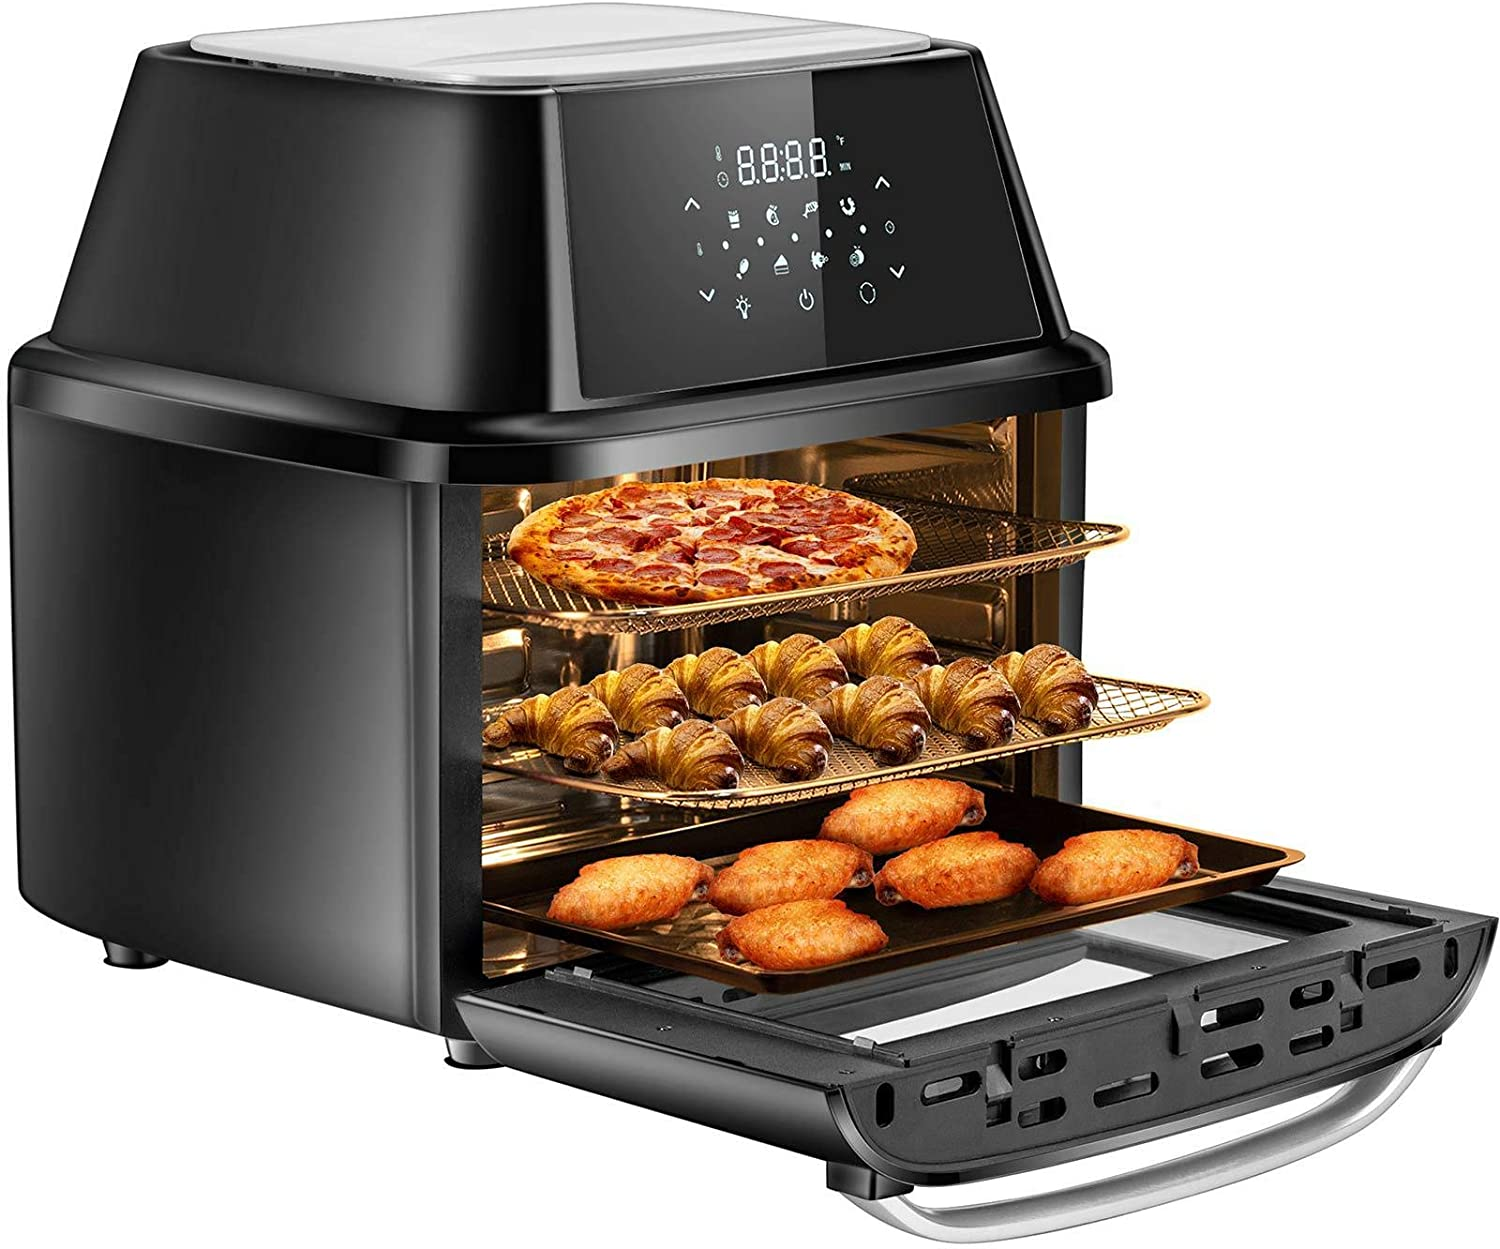 OMMO Air Fryer Oven, 17 Quarts 1800W Air Fryer Toaster Oven, 8 Presets & 40+ Recipes, Oilless Countertop Oven for Air Frying, Rotisserie, Dehydrating and Baking, Dishwasher Safe Accessories